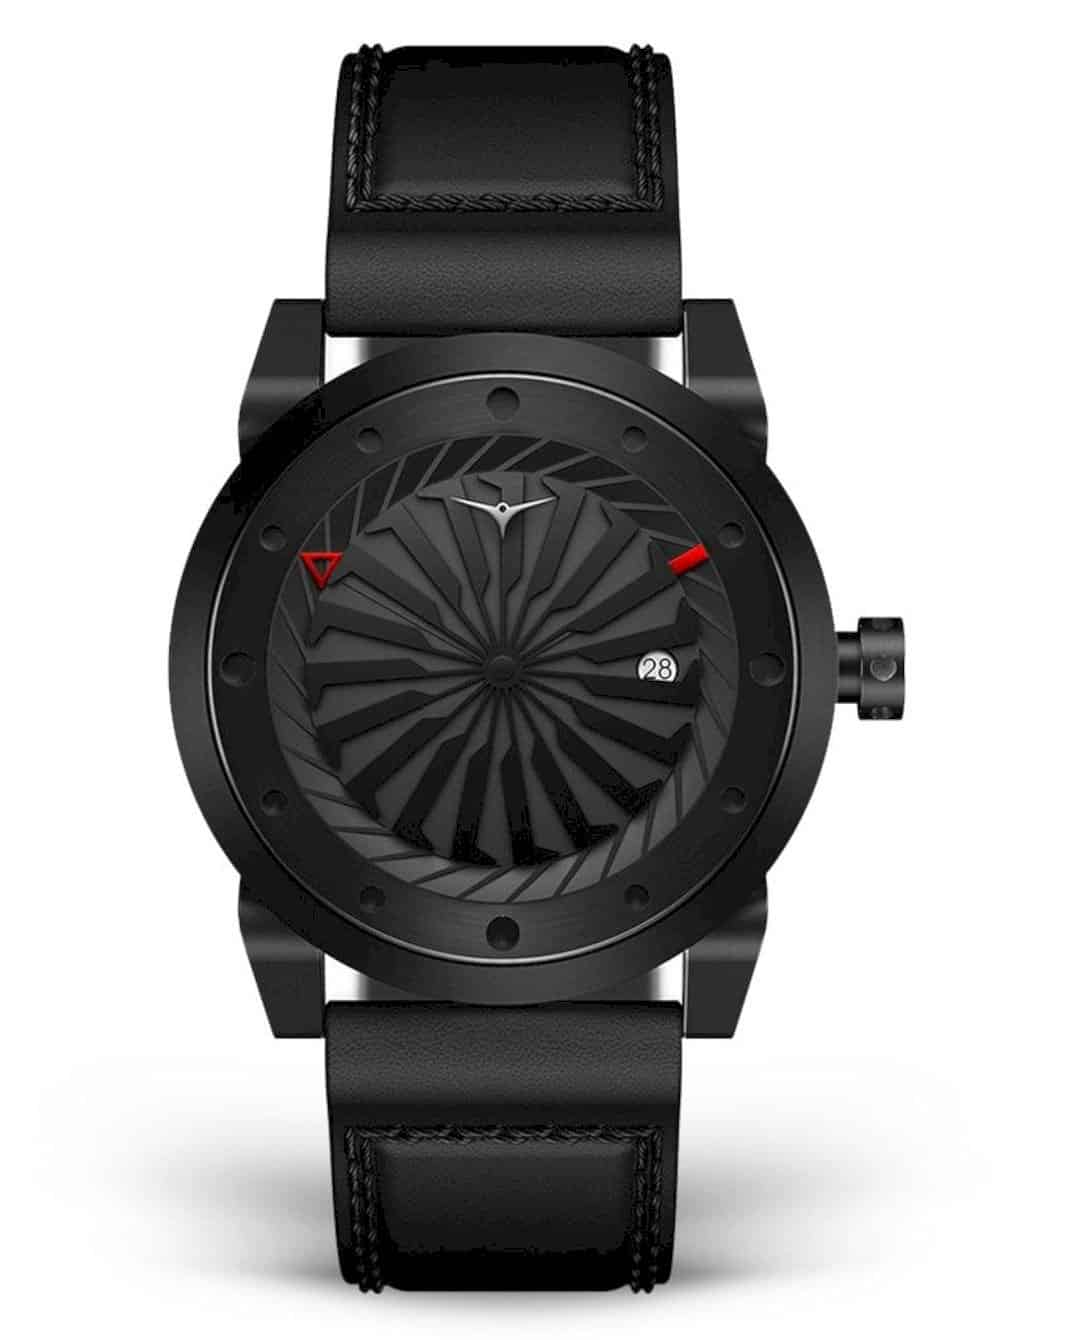 Blade Phantom: A Perfect Watch with Perfect Quality